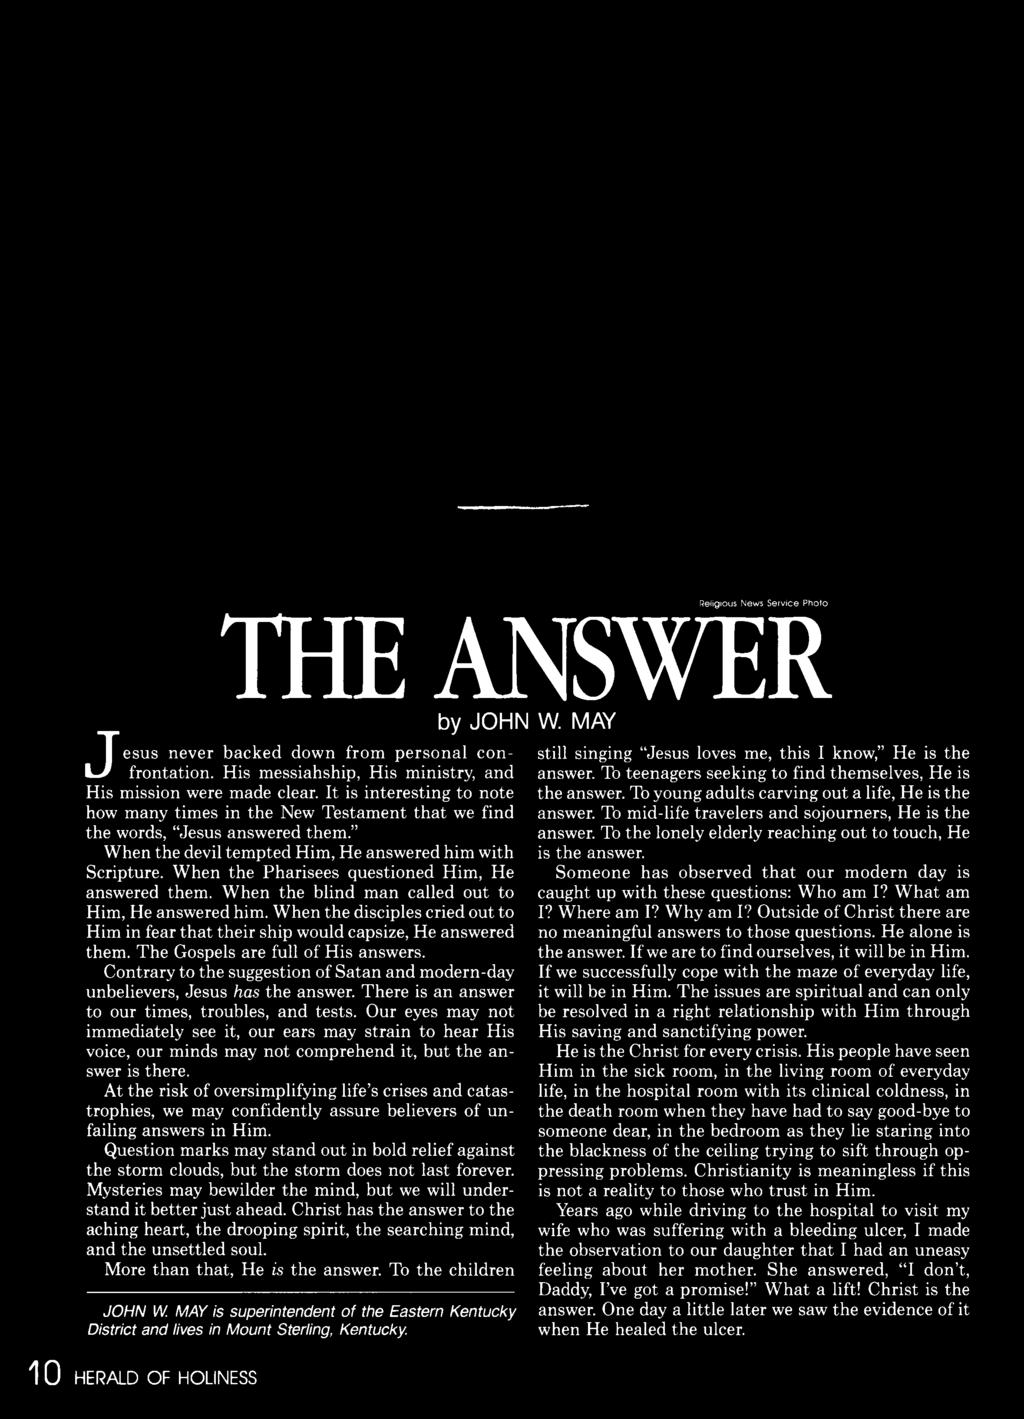 Herald of holiness volume 75 number 06 1986 pdf contrary to the suggestion o f satan and modern day unbelievers jesus has the answer fandeluxe Gallery